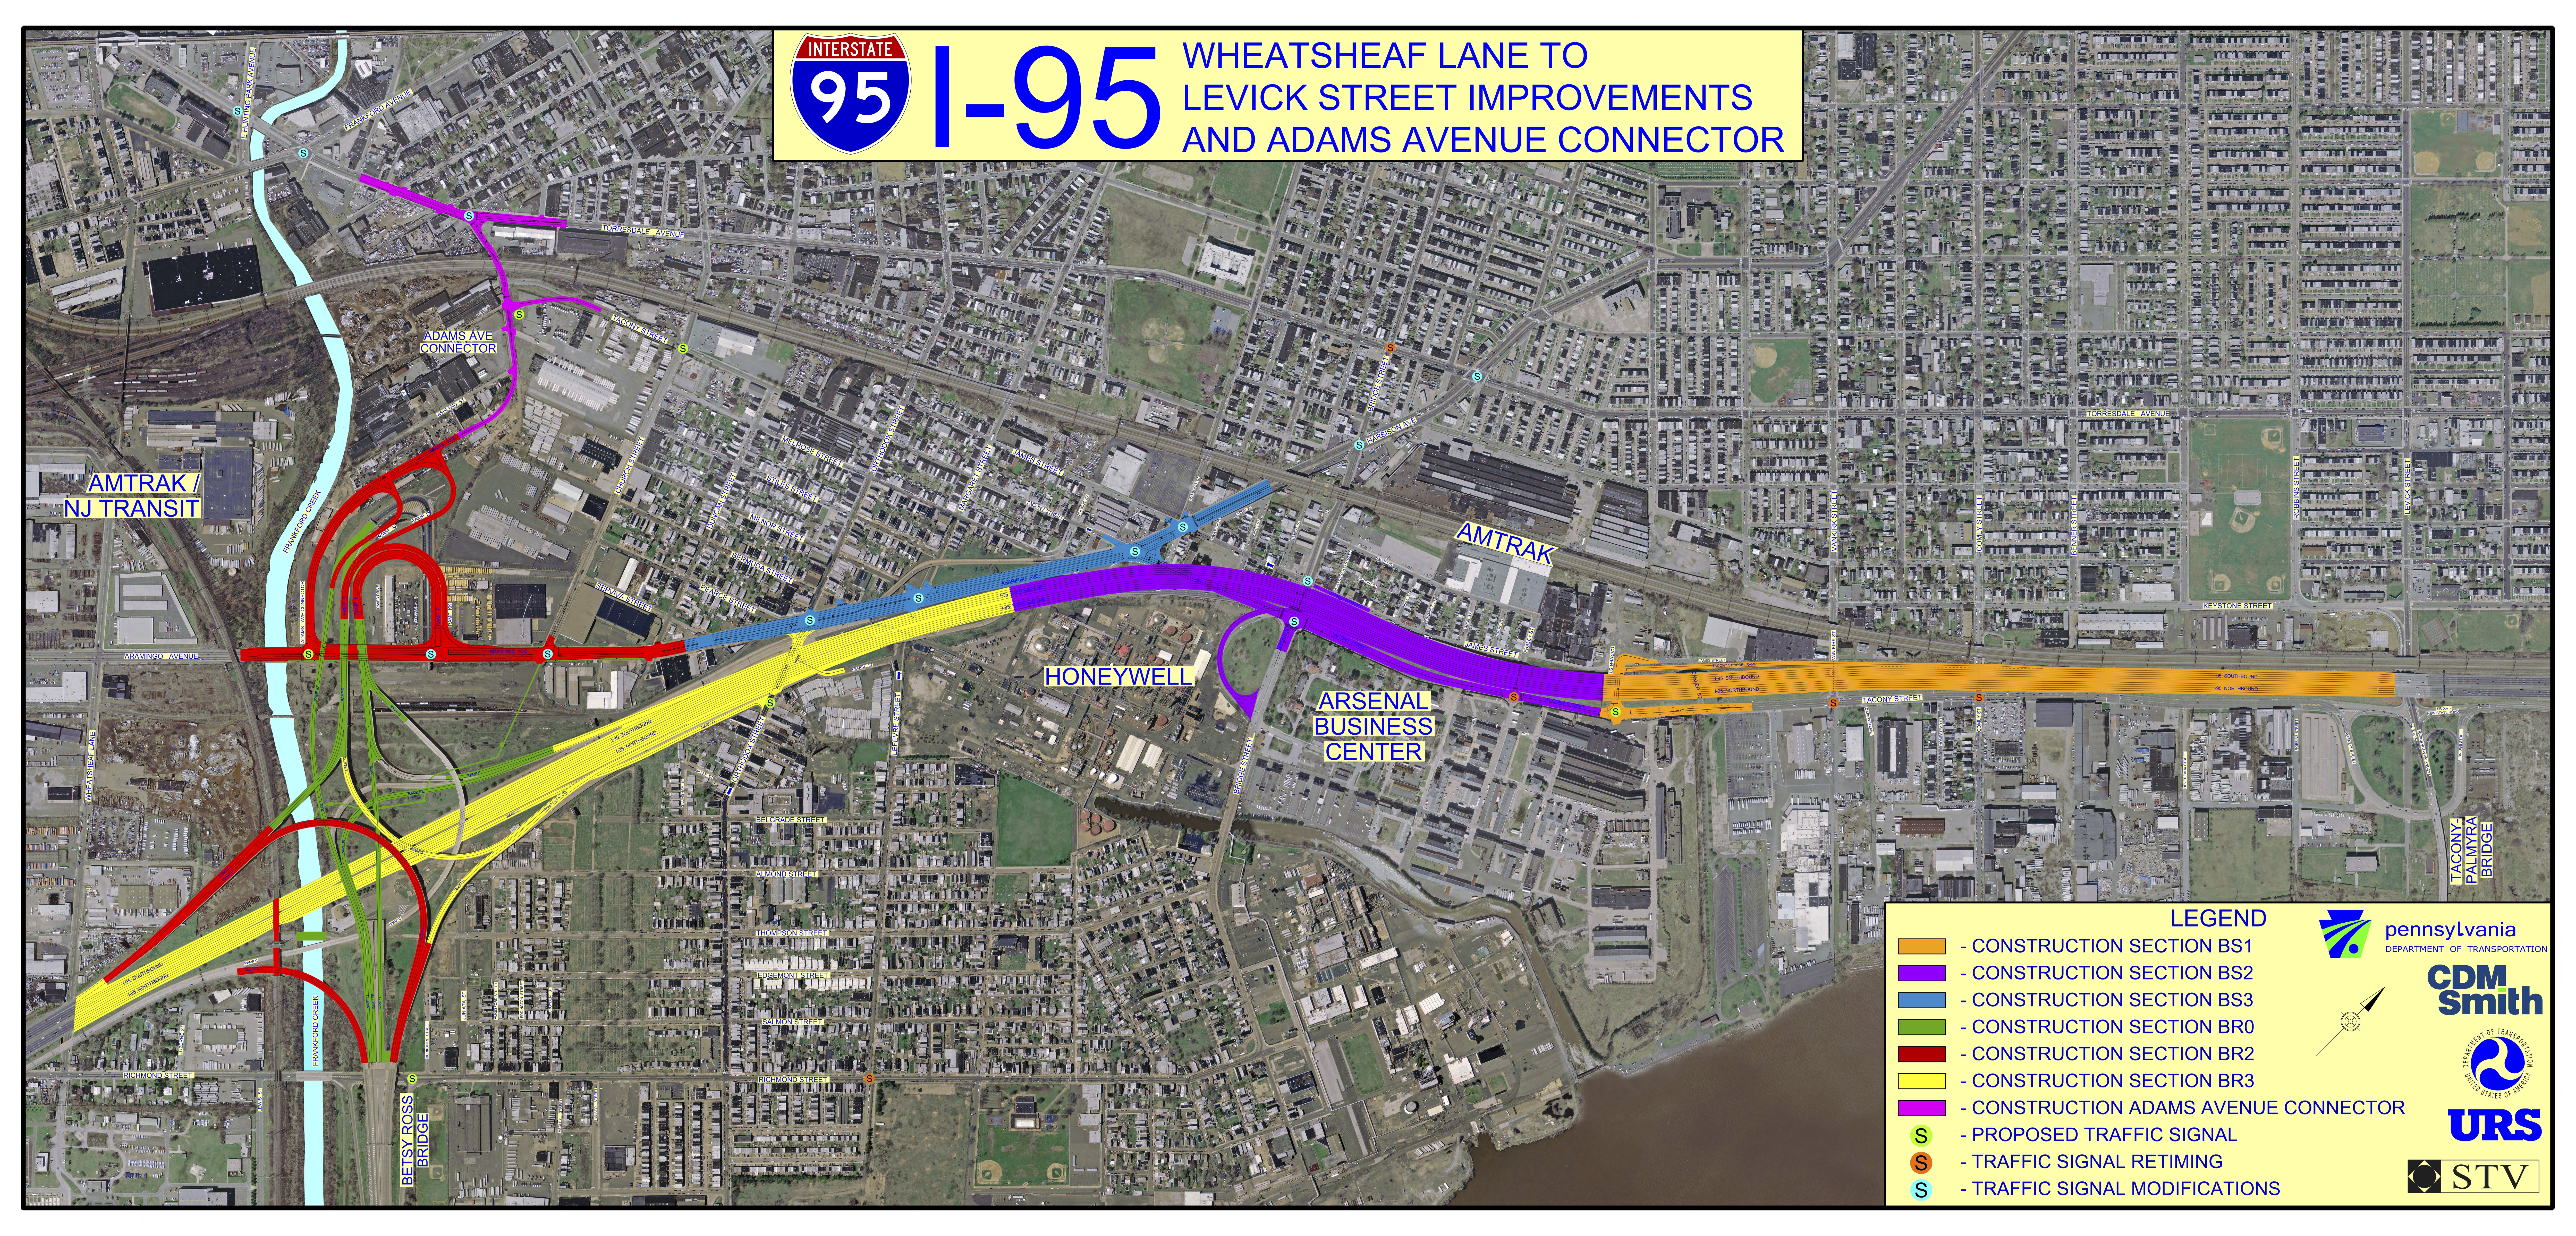 Project map, Wheatsheaf Lane to Levick Street and Adams Avenue Connector. Courtesy of PennDOT